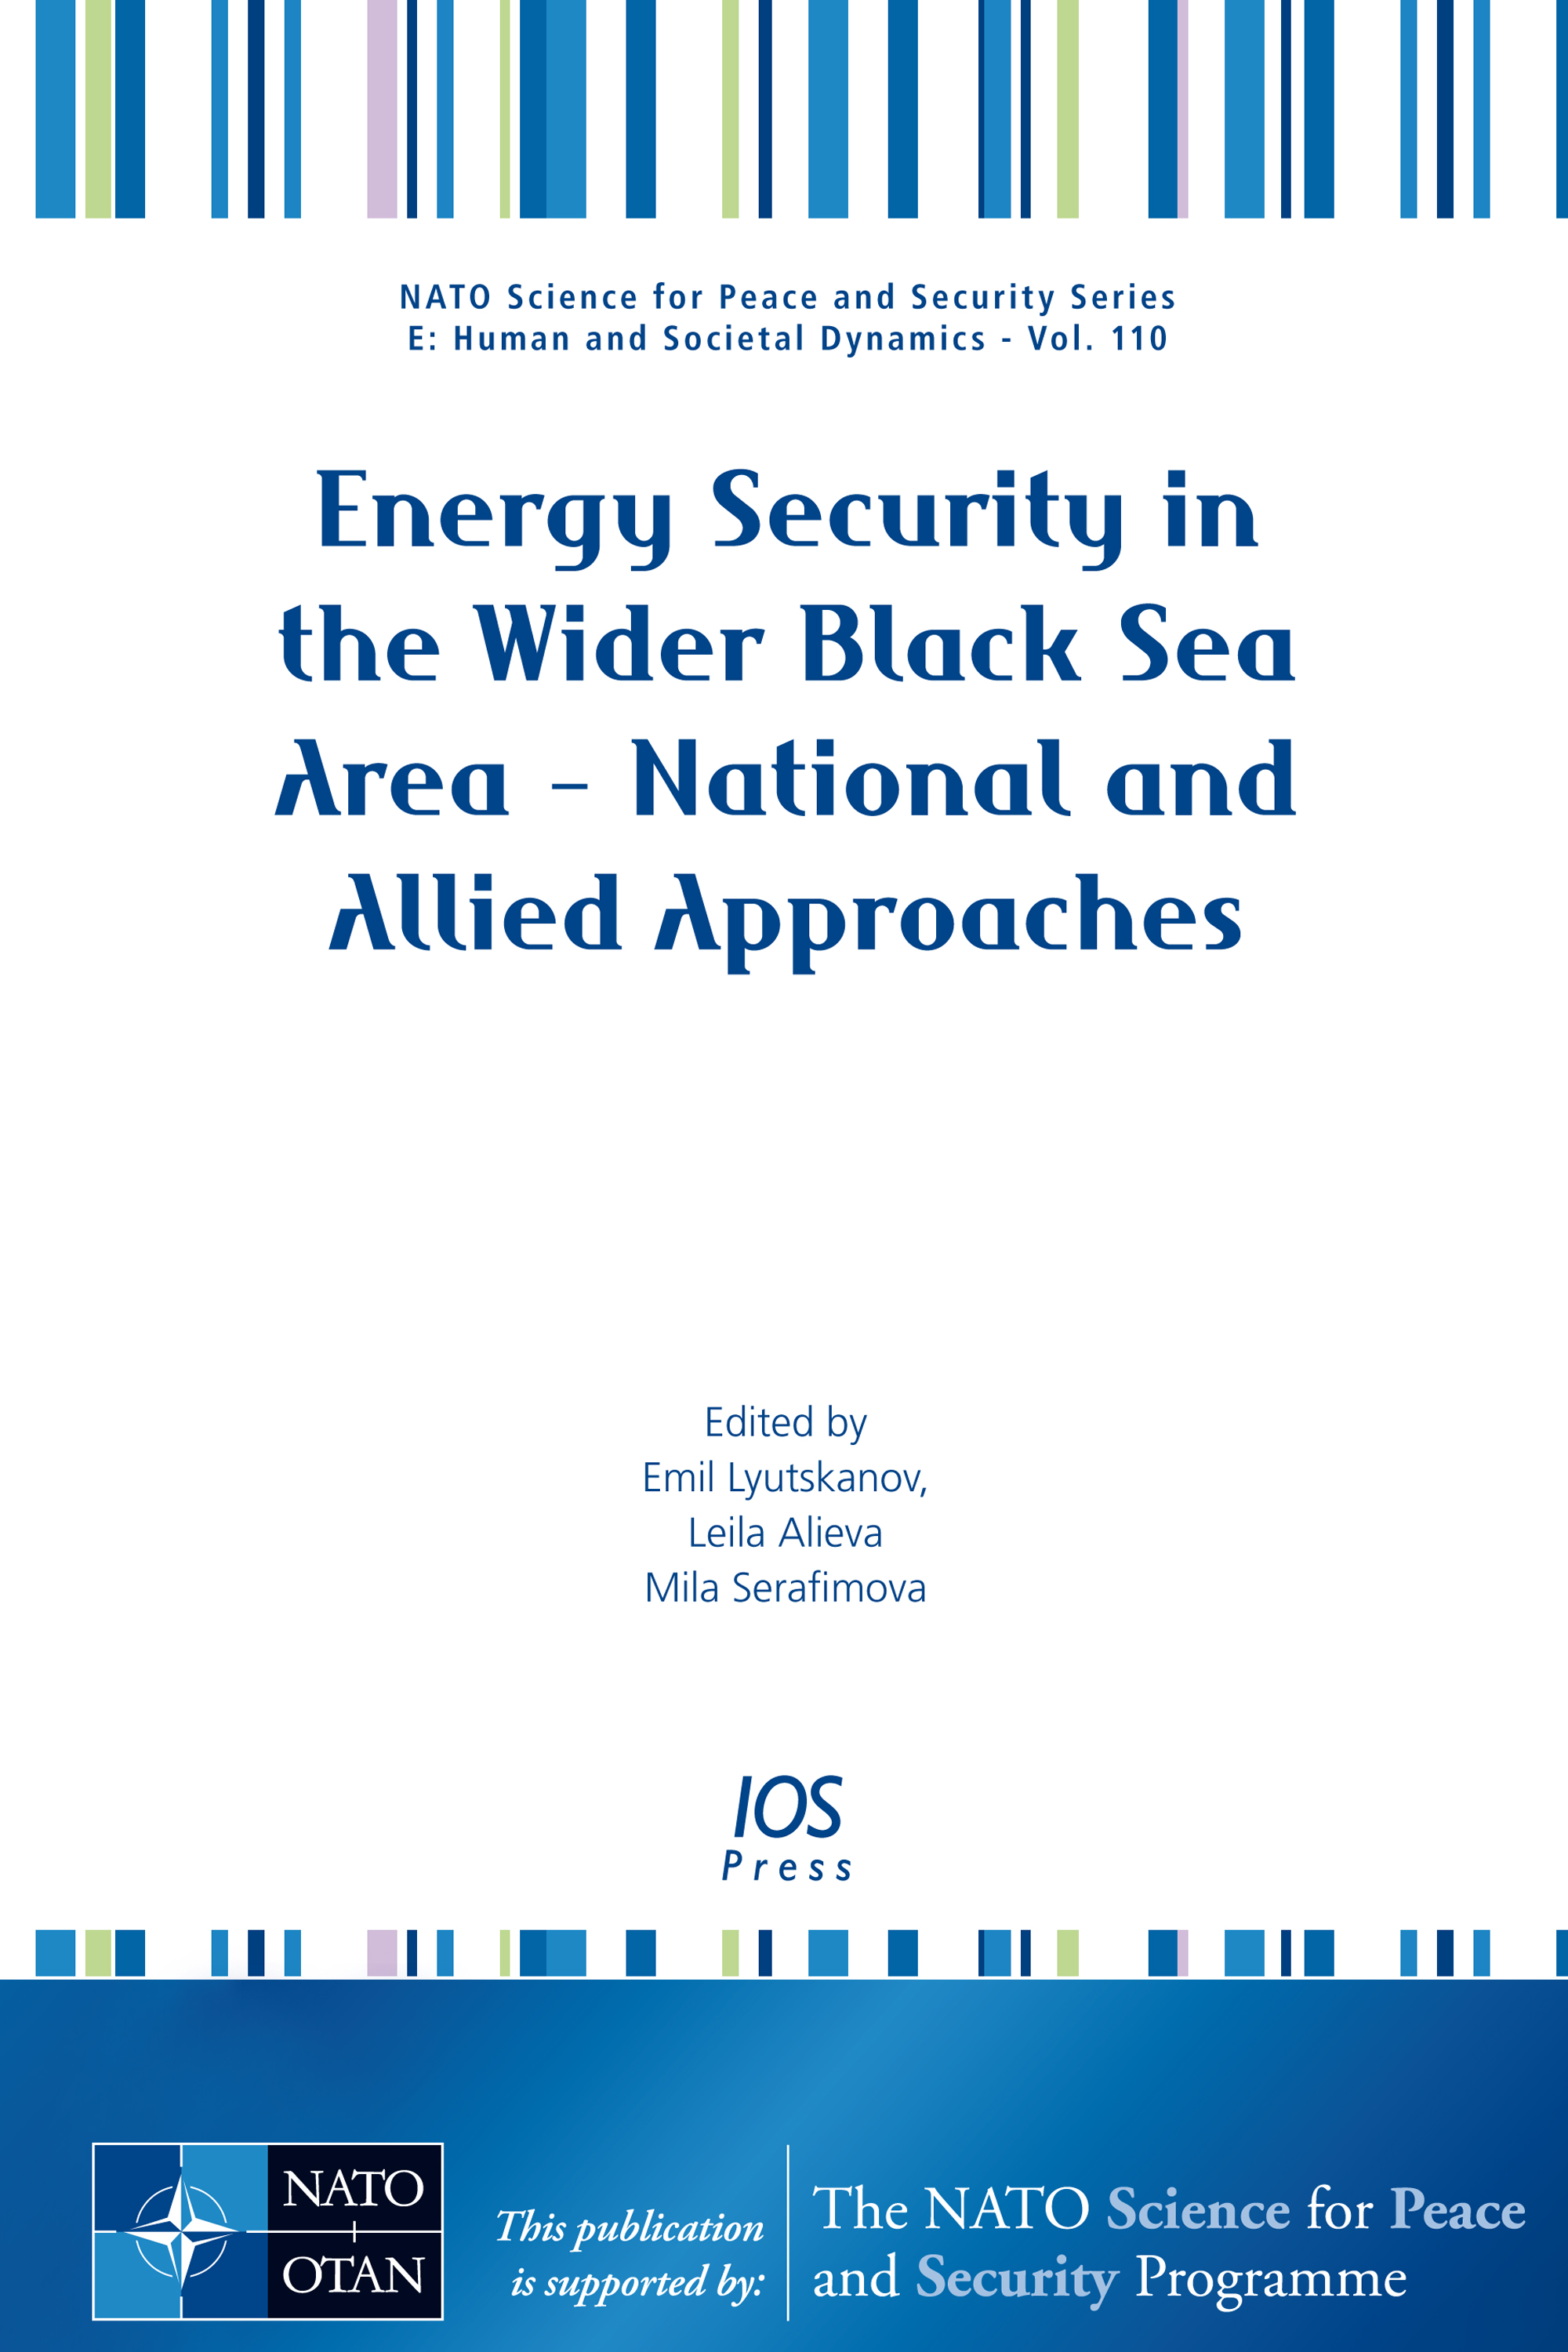 energy security essay Energy security is one of the most important considerations in national energy systems it affects policies in international relations, conventional (military) security, trade, infrastructure investment and technology to name just a few energy security research at iiasa aims to understand present energy security concerns and the energy security.